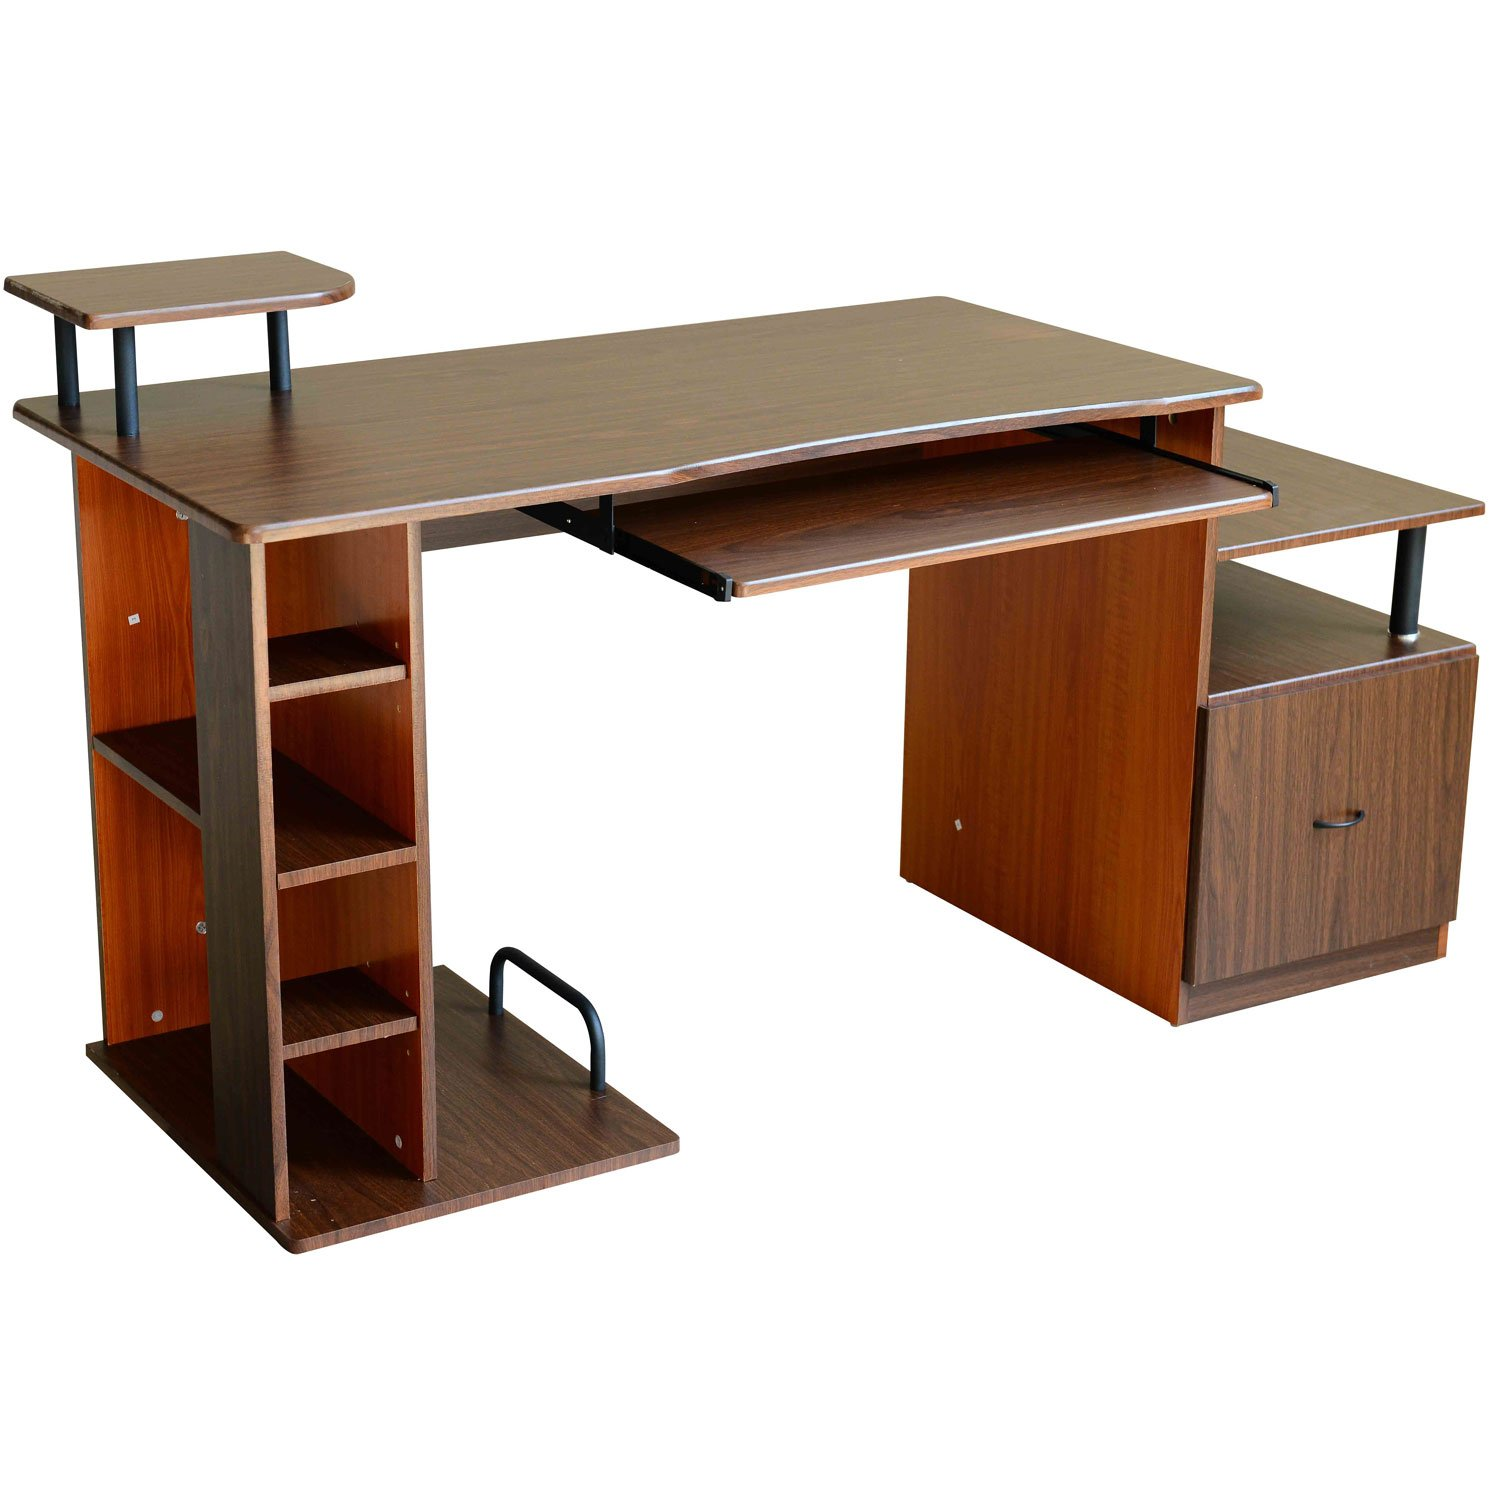 HomCom Multi-Level Home Office / Dorm Computer Desk - Dark Walnut / Golden Oak at Sears.com